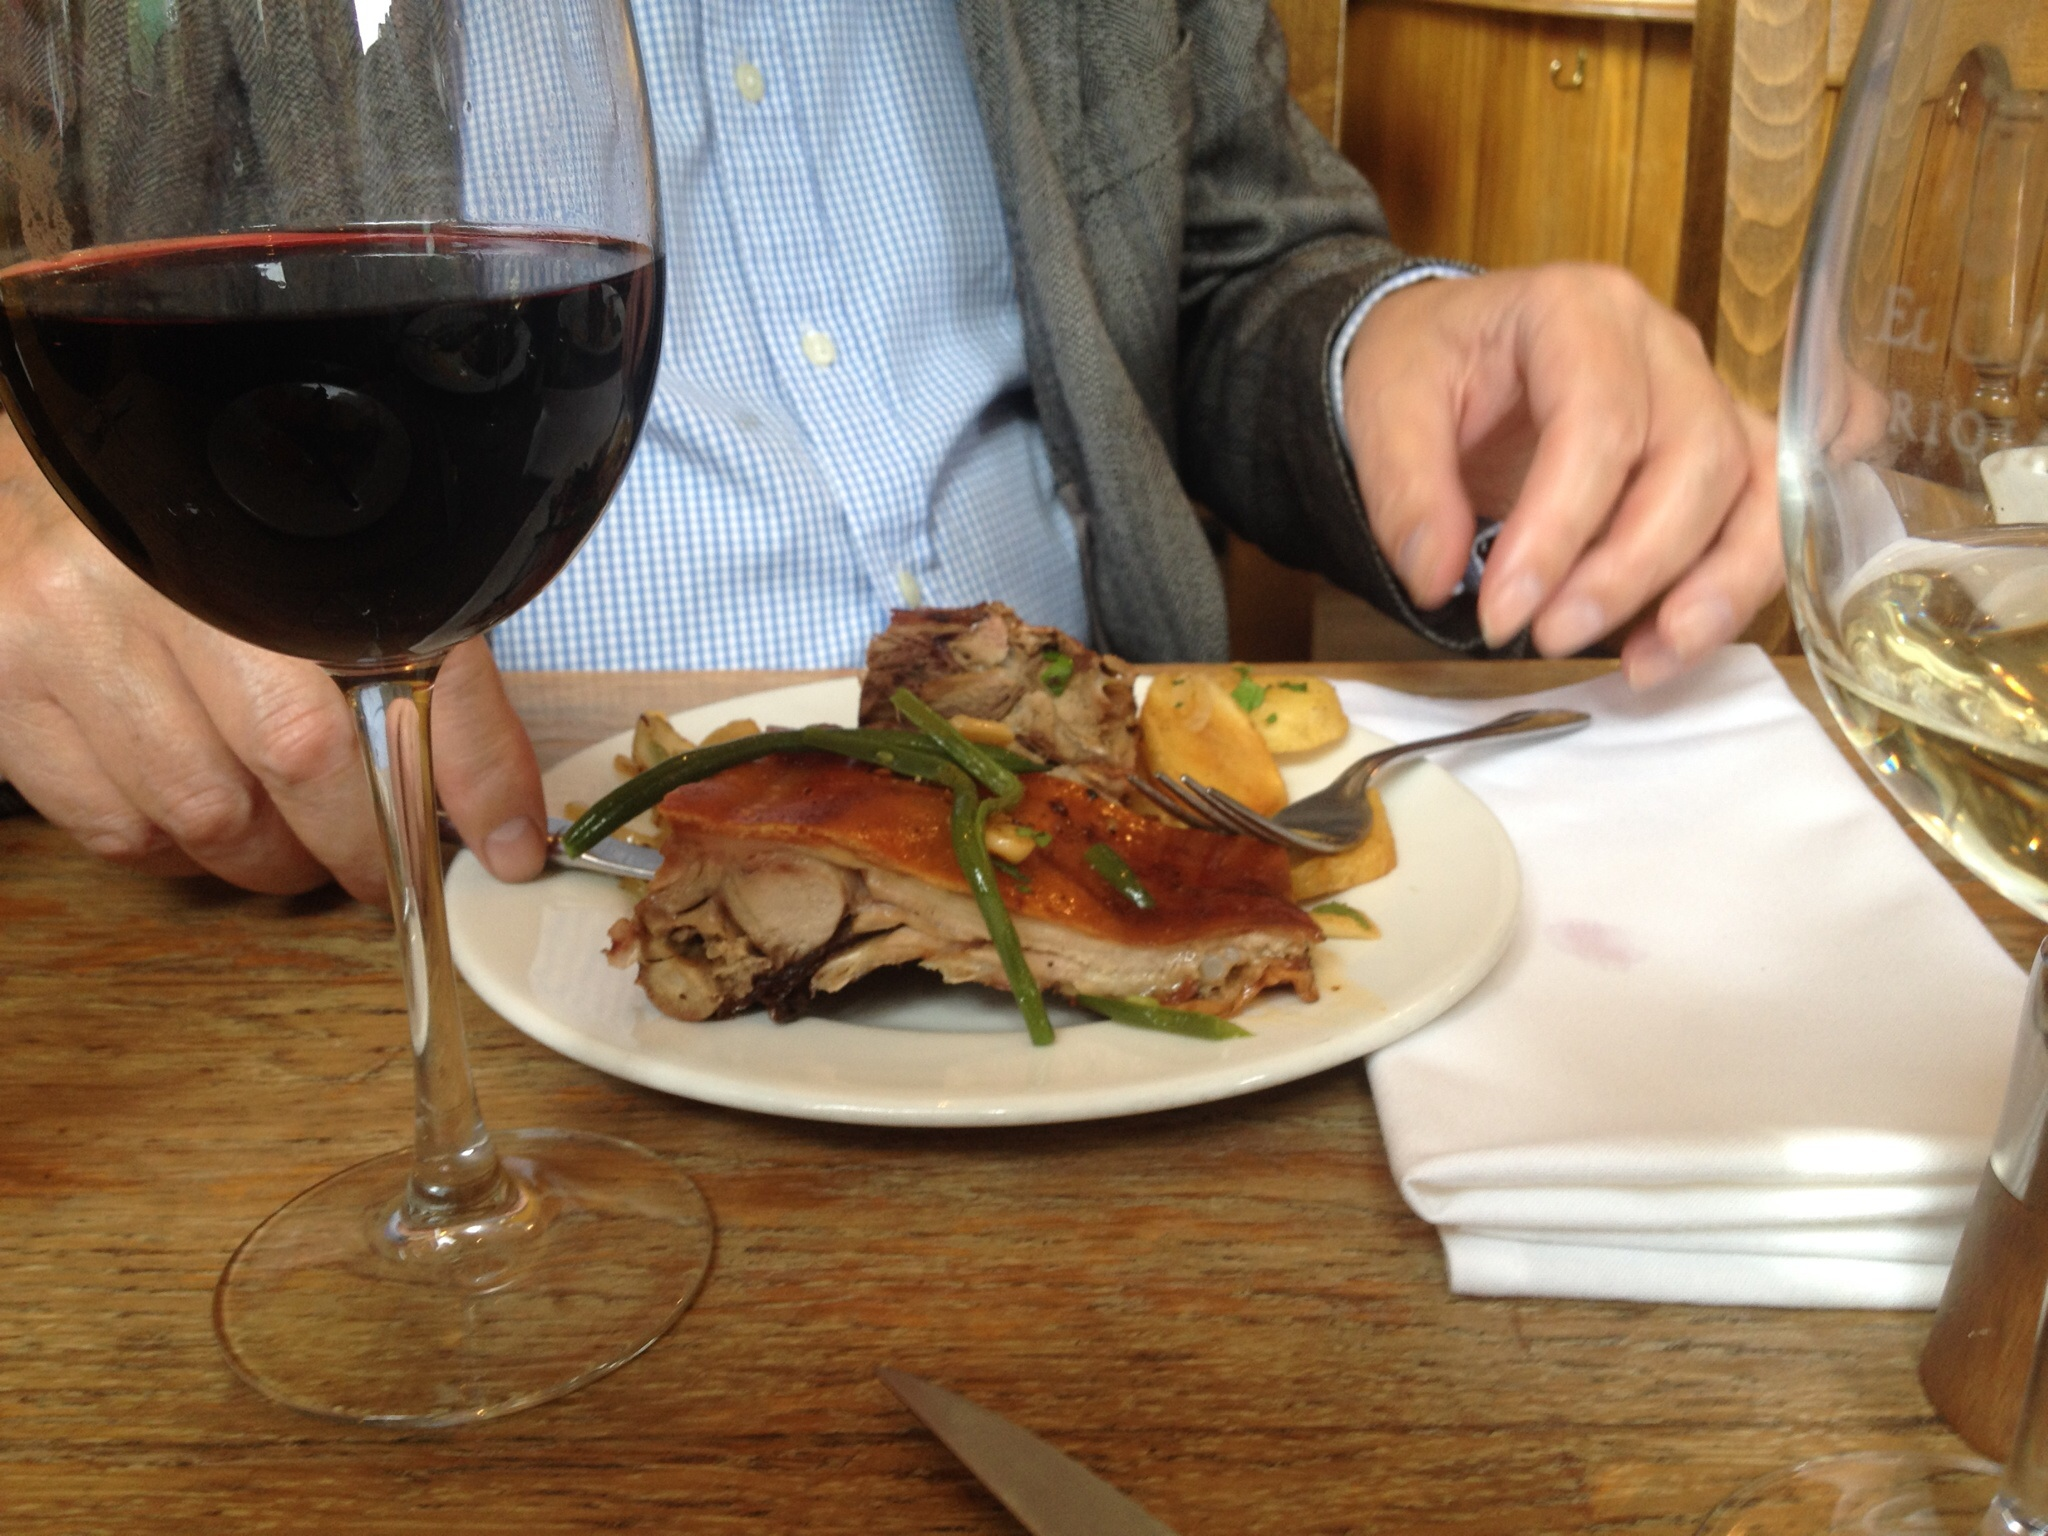 Little roast pigs were the highlight, especially bought up each week from southern Spain especially for the Resturants famous weekend roast